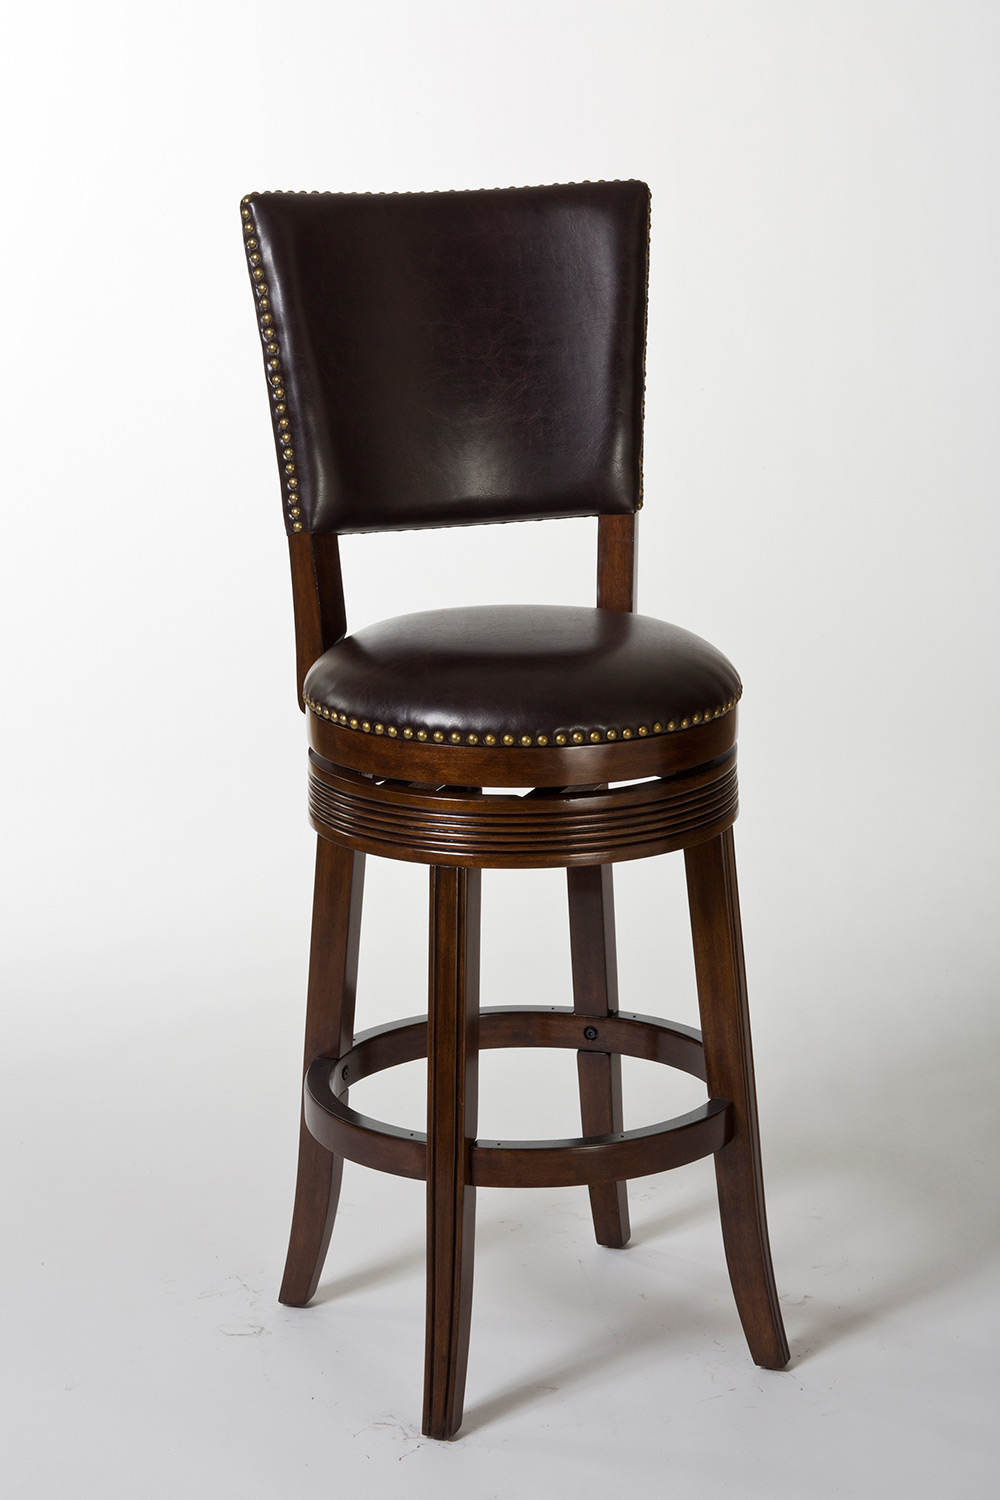 Hillsdale Sonesta Swivel Counter Stool - Espresso/Dark Brown PU